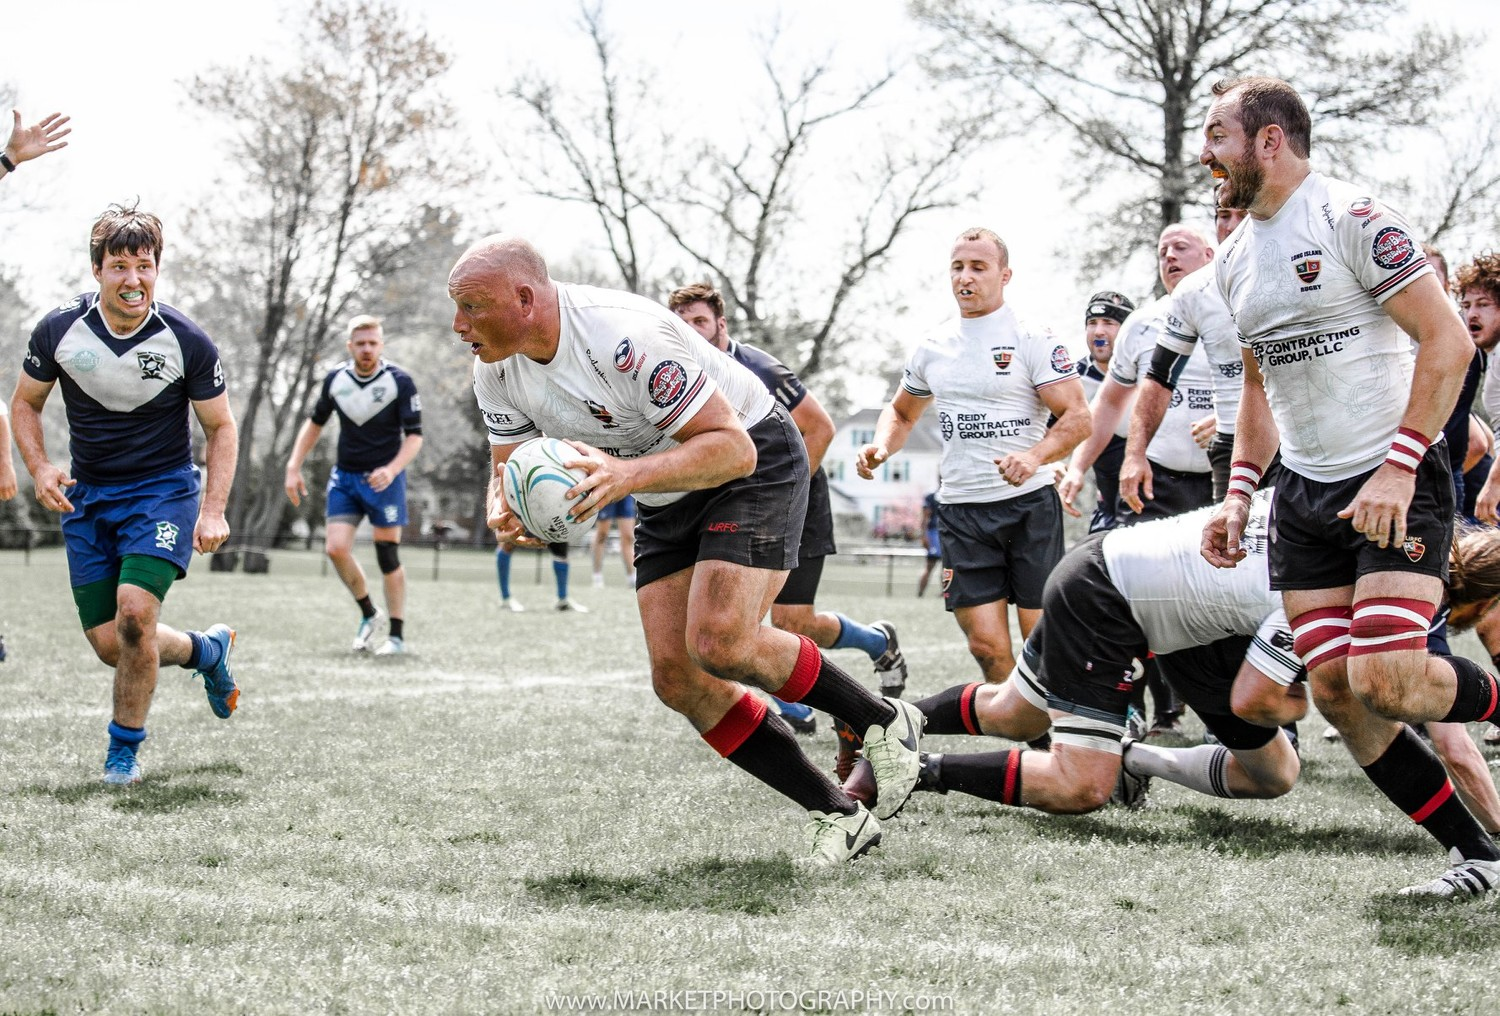 Long Island Rugby Club Captain Lance Rea, of Huntington, mad a break against Boston Maccabi Rugby Club in Providence, Rhode Island, on May 6 during the National Rugby North Atlantic Championship.